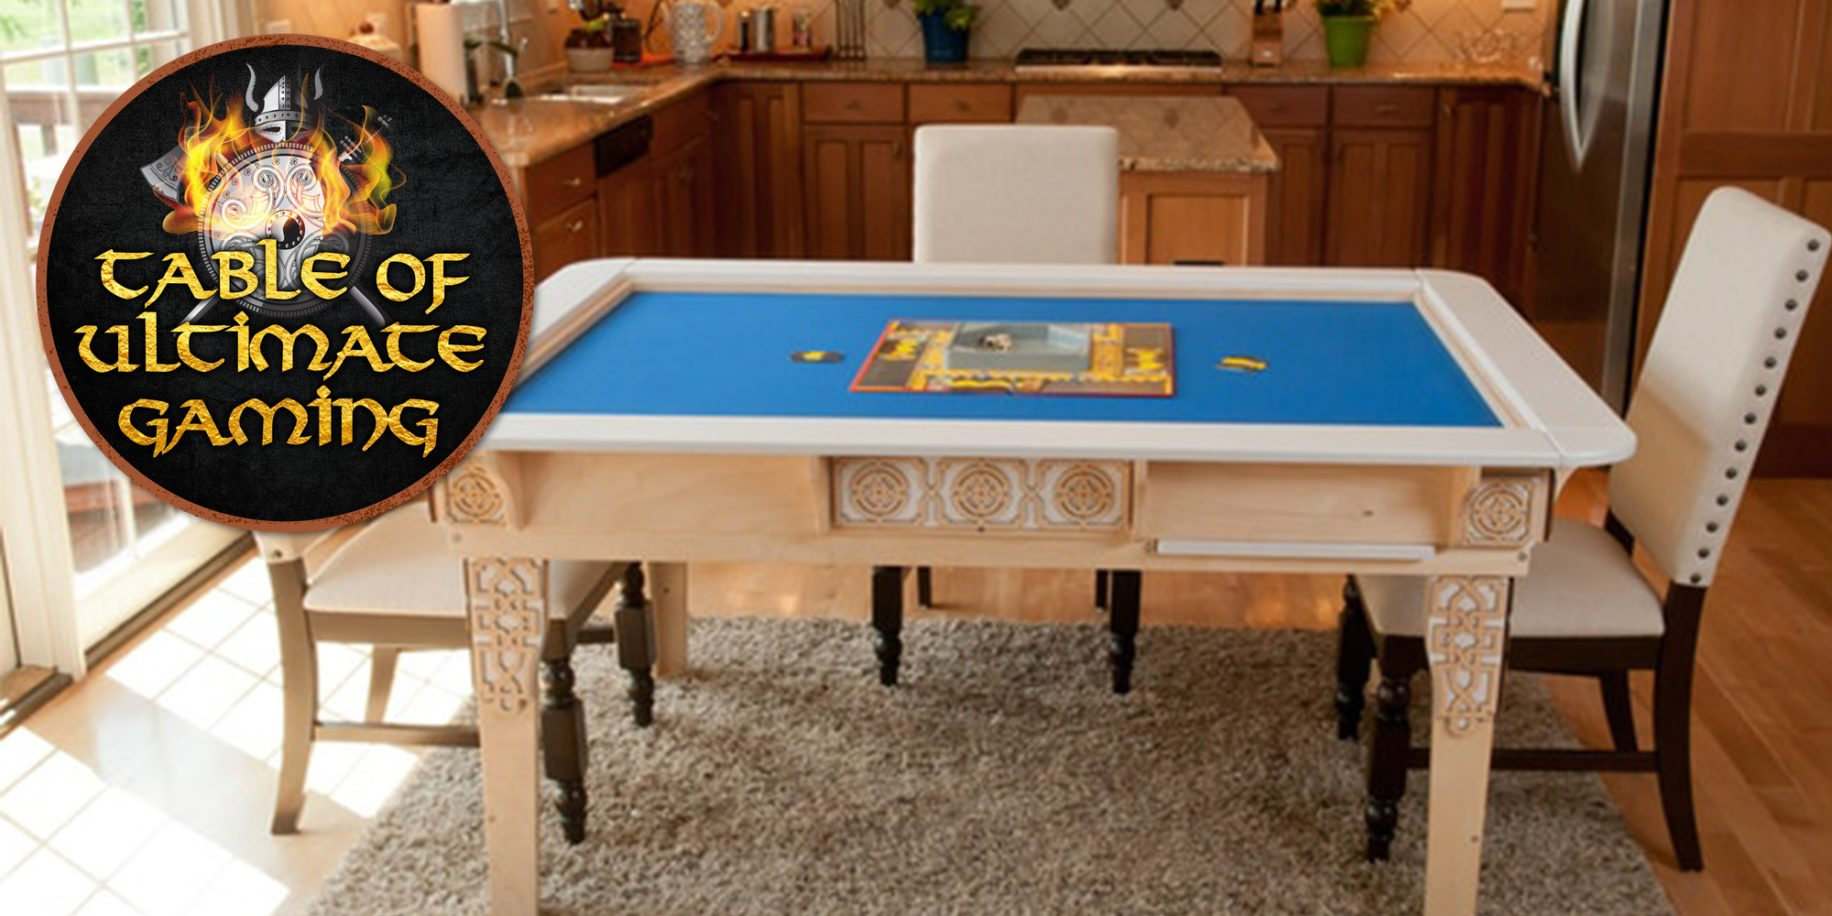 Amazing The Kickstarter Page For The Table Of Ultimate Gaming: The Ultimate Game  Table System, One Of The Most Exciting Gaming Products In Recent Memory, ...